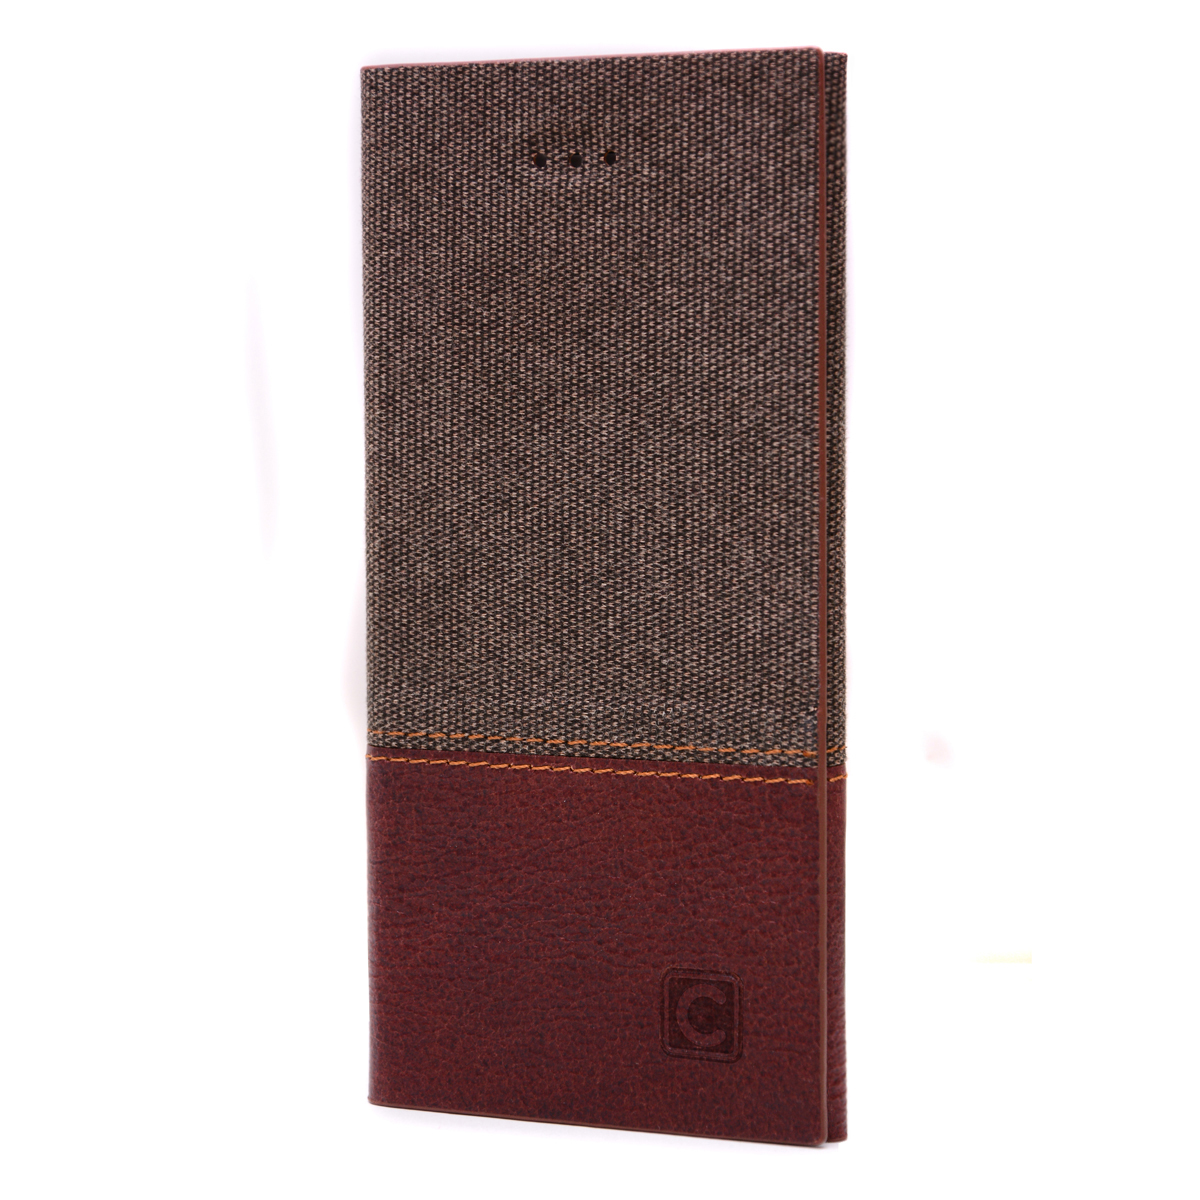 on sale b8a2c 05a4e Cowboy Duo RFID Brown Genuine Leather Spliced with Nylon Flip Wallet ...